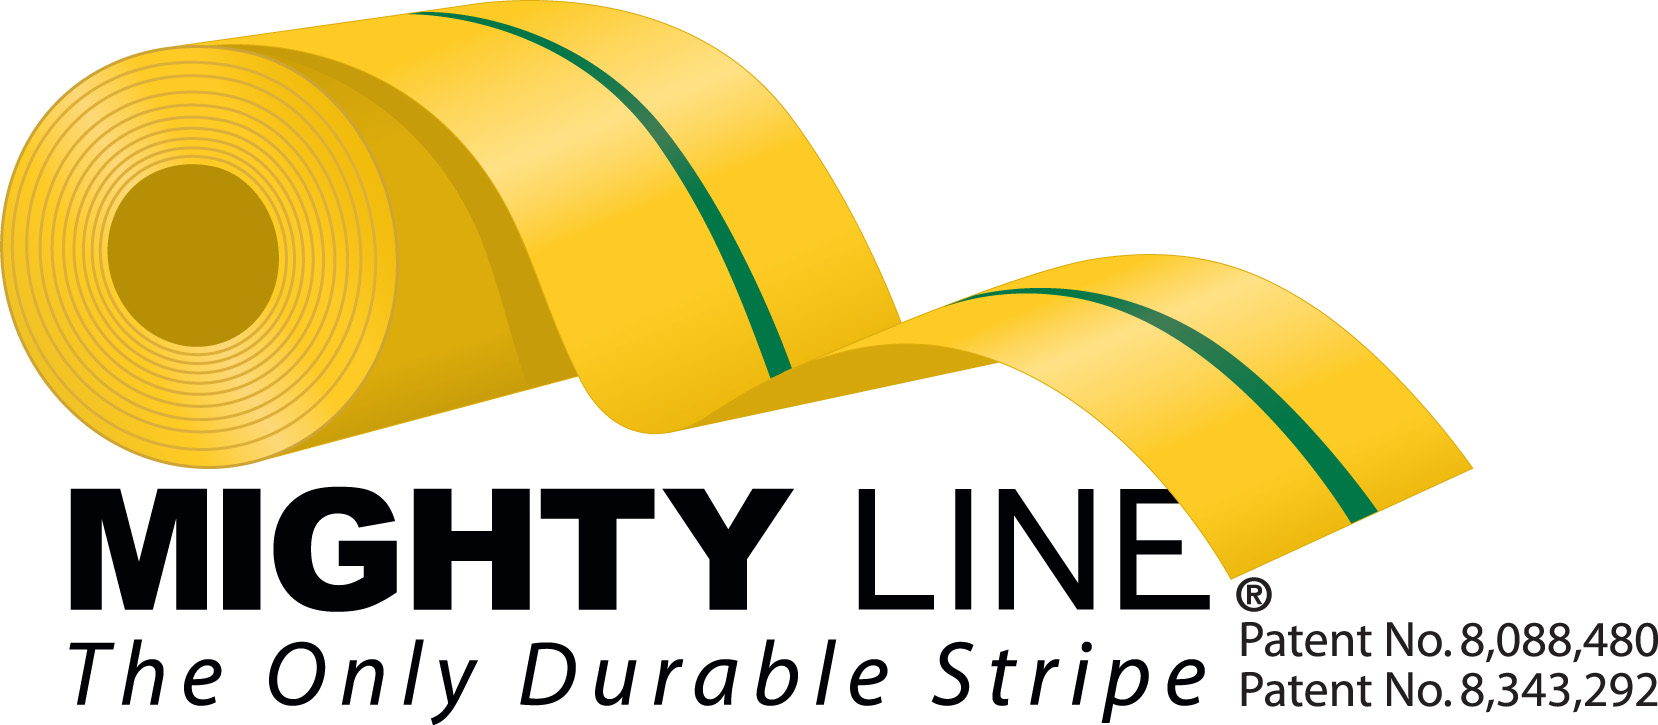 Nice Mighty Line Safety Floor Tape U2013 The Blog About Floor Marking Tape, Floor  Signs, 5s Floor Markings, And 5s Lean Warehouses